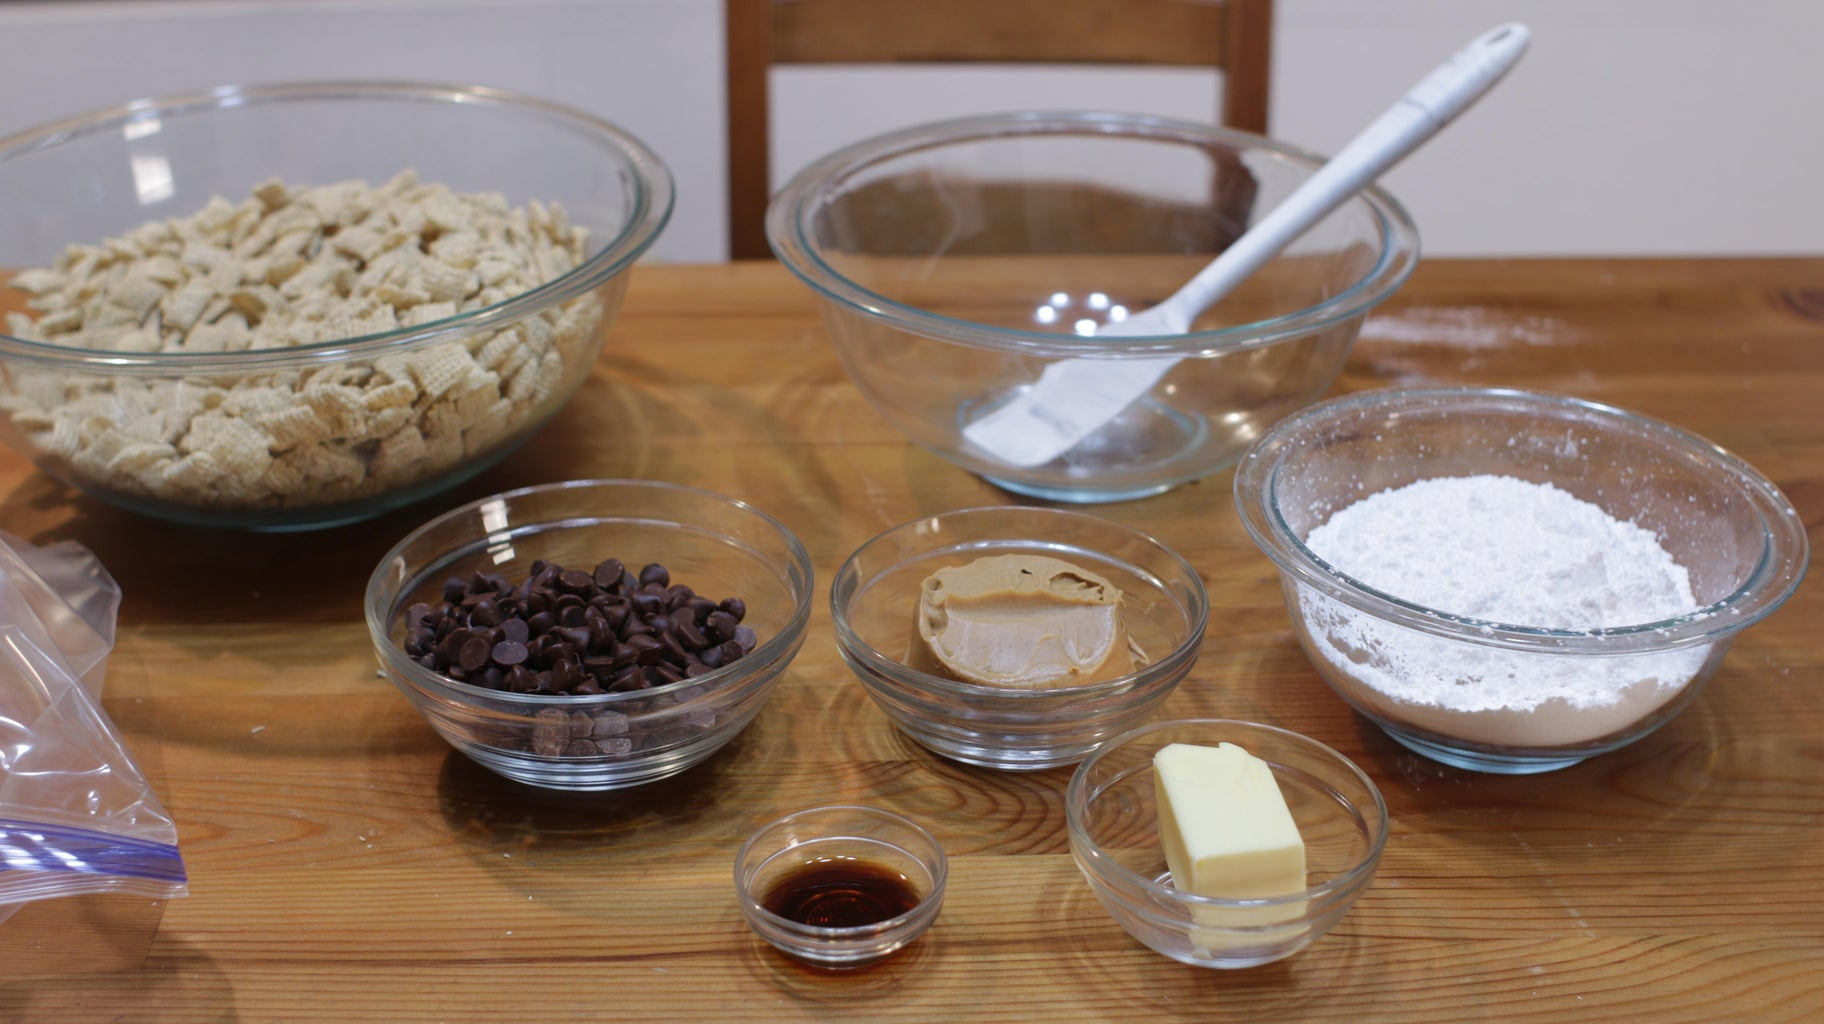 Ingredients and Tools